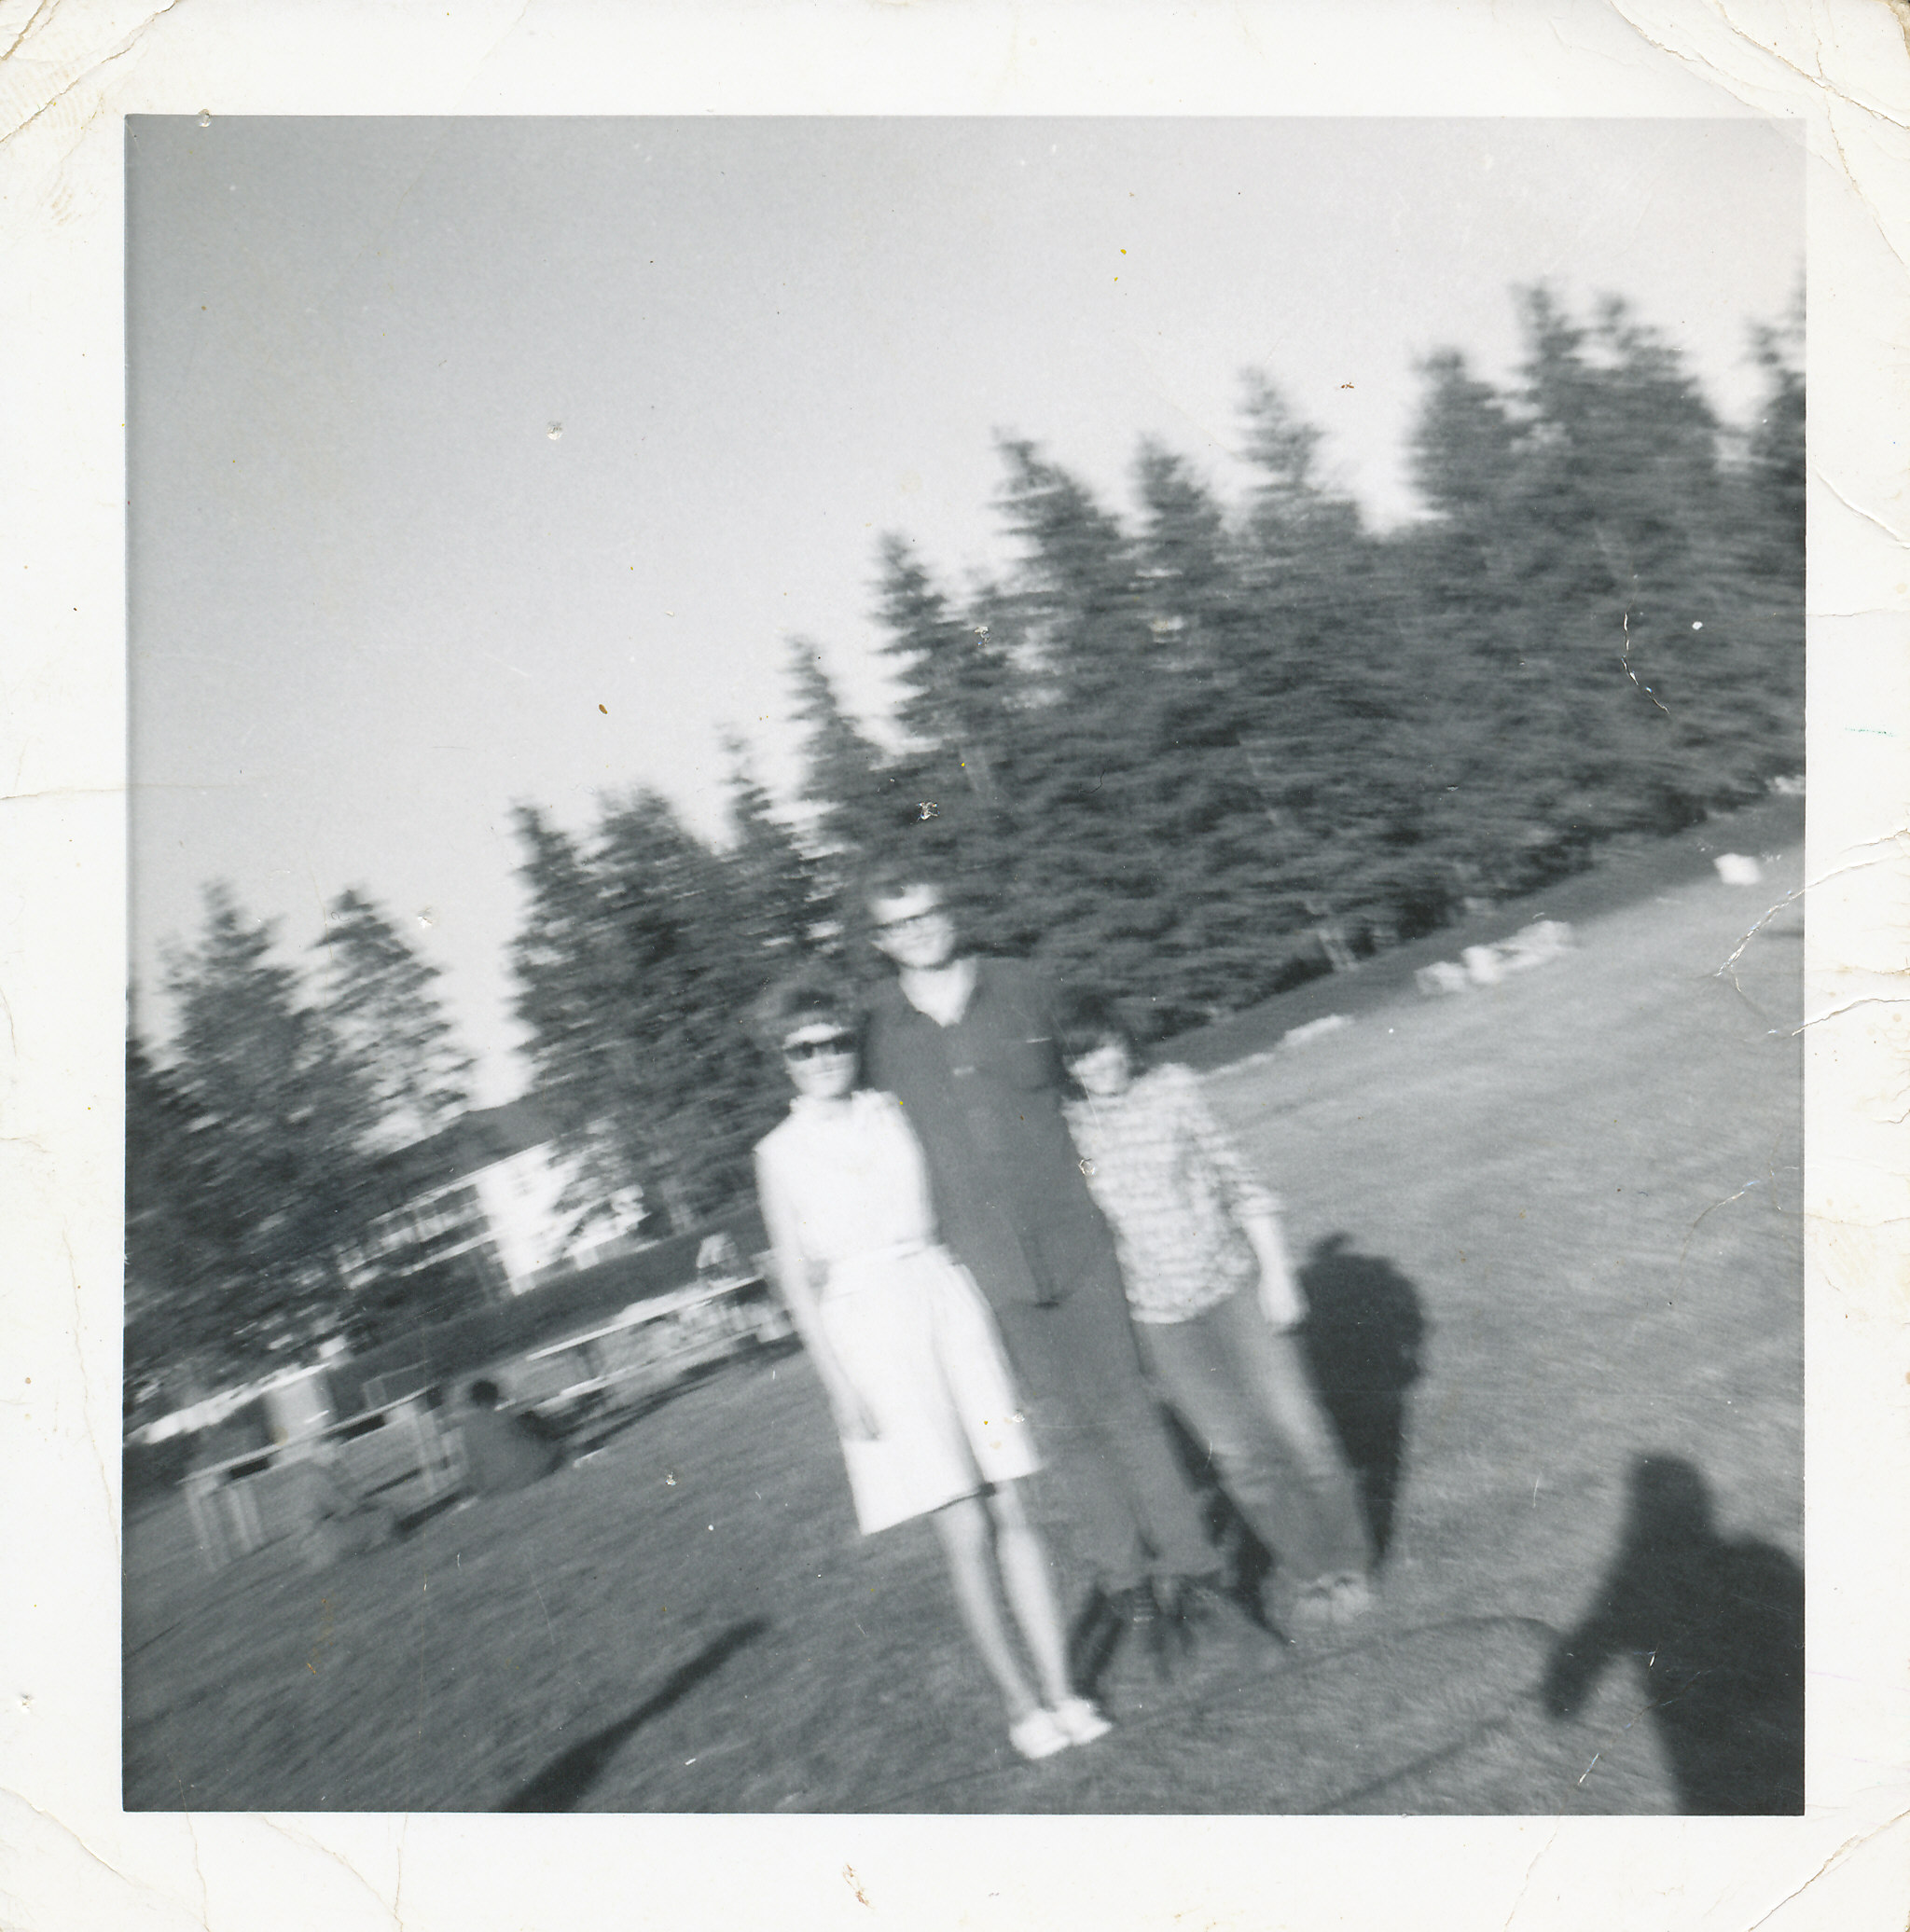 2 young women and one young man standing in playing fields